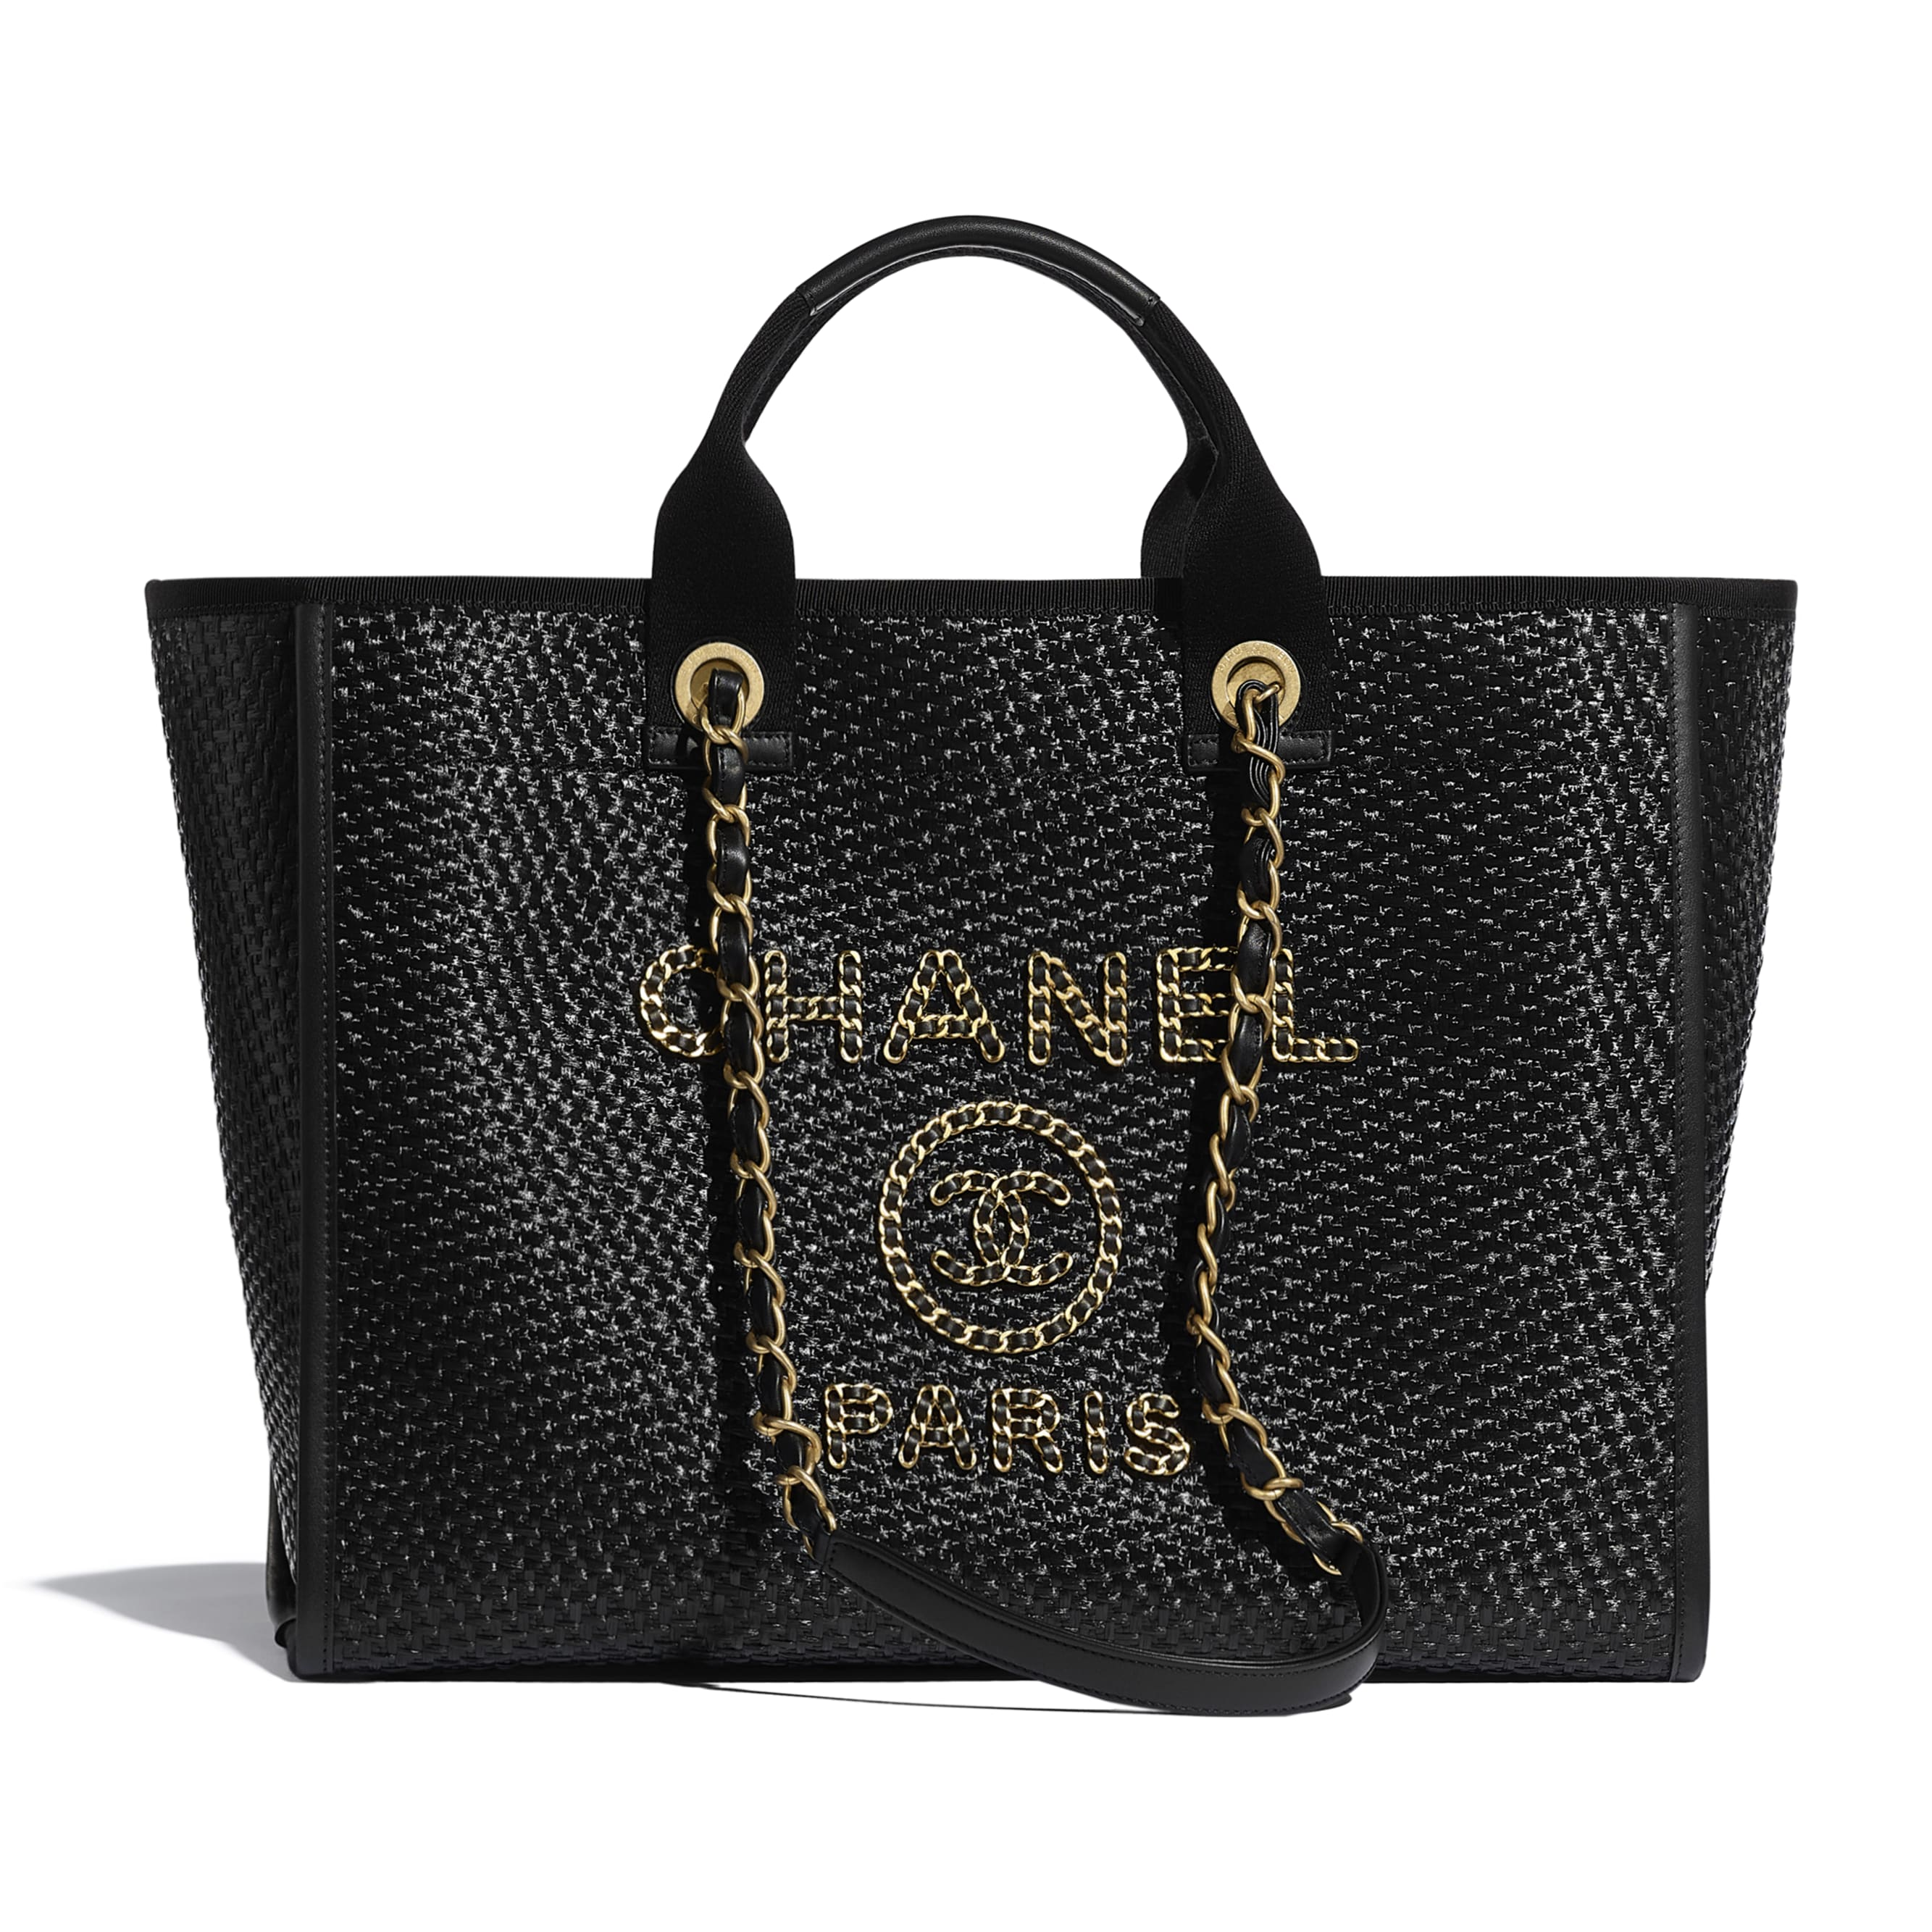 Large Tote - Black - Straw, Calfskin & Gold Metal - CHANEL - Default view - see standard sized version